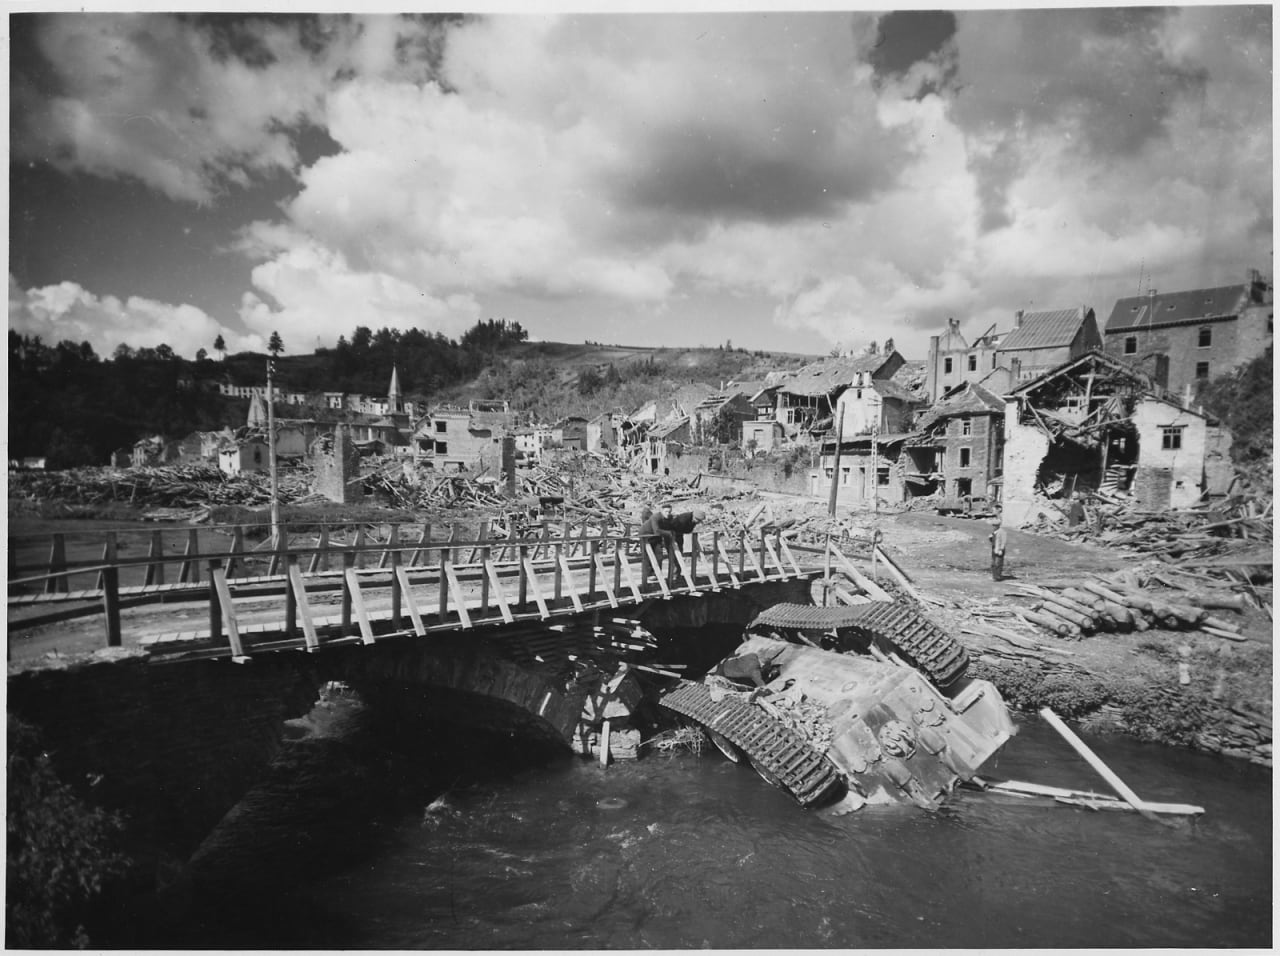 An_overturned_German_tank_lies_in_a_shallow_stream_alongside_a_rebuilt_bridge_in_war-ravaged_Houffalizo,_Belgium._-_NARA_-_196224